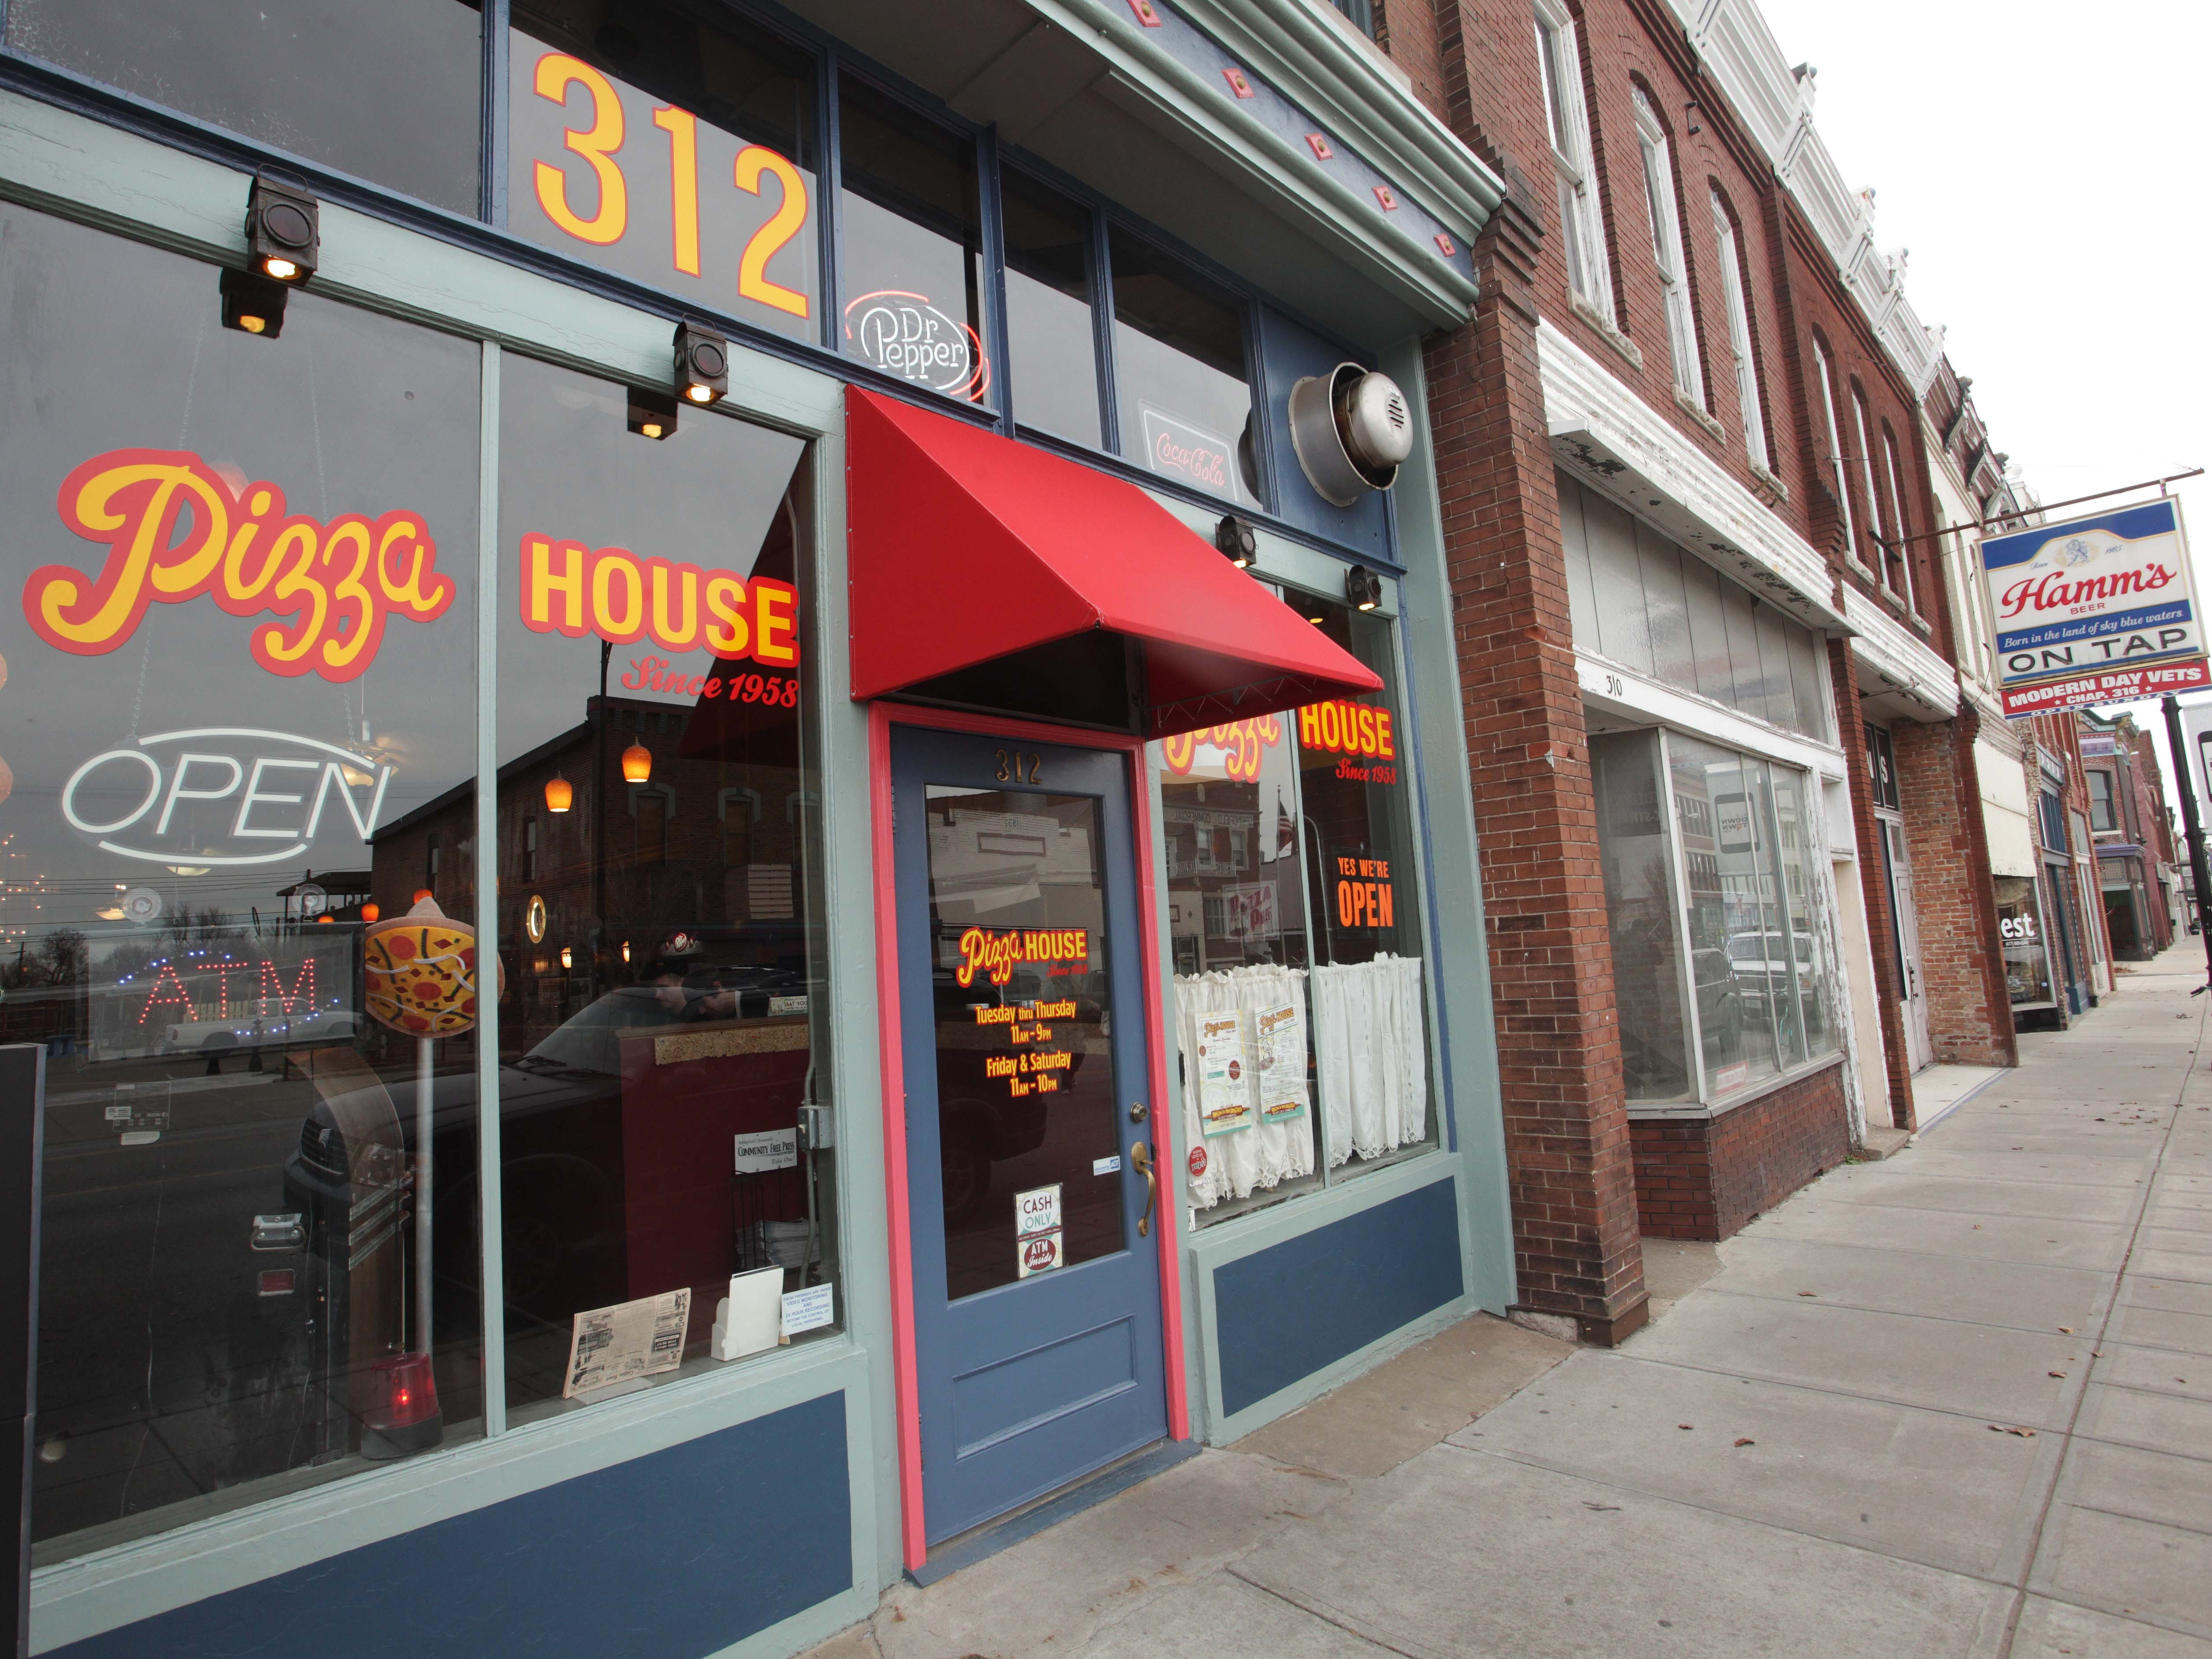 Pizza House recently celebrated it 60th anniversary. The iconic Springfield pizza restaurant first opened its doors on Oct. 13, 1958. While the original restaurant was located on South Glenstone Avenue, it moved to Commercial Street after a landlord dispute in 2008.